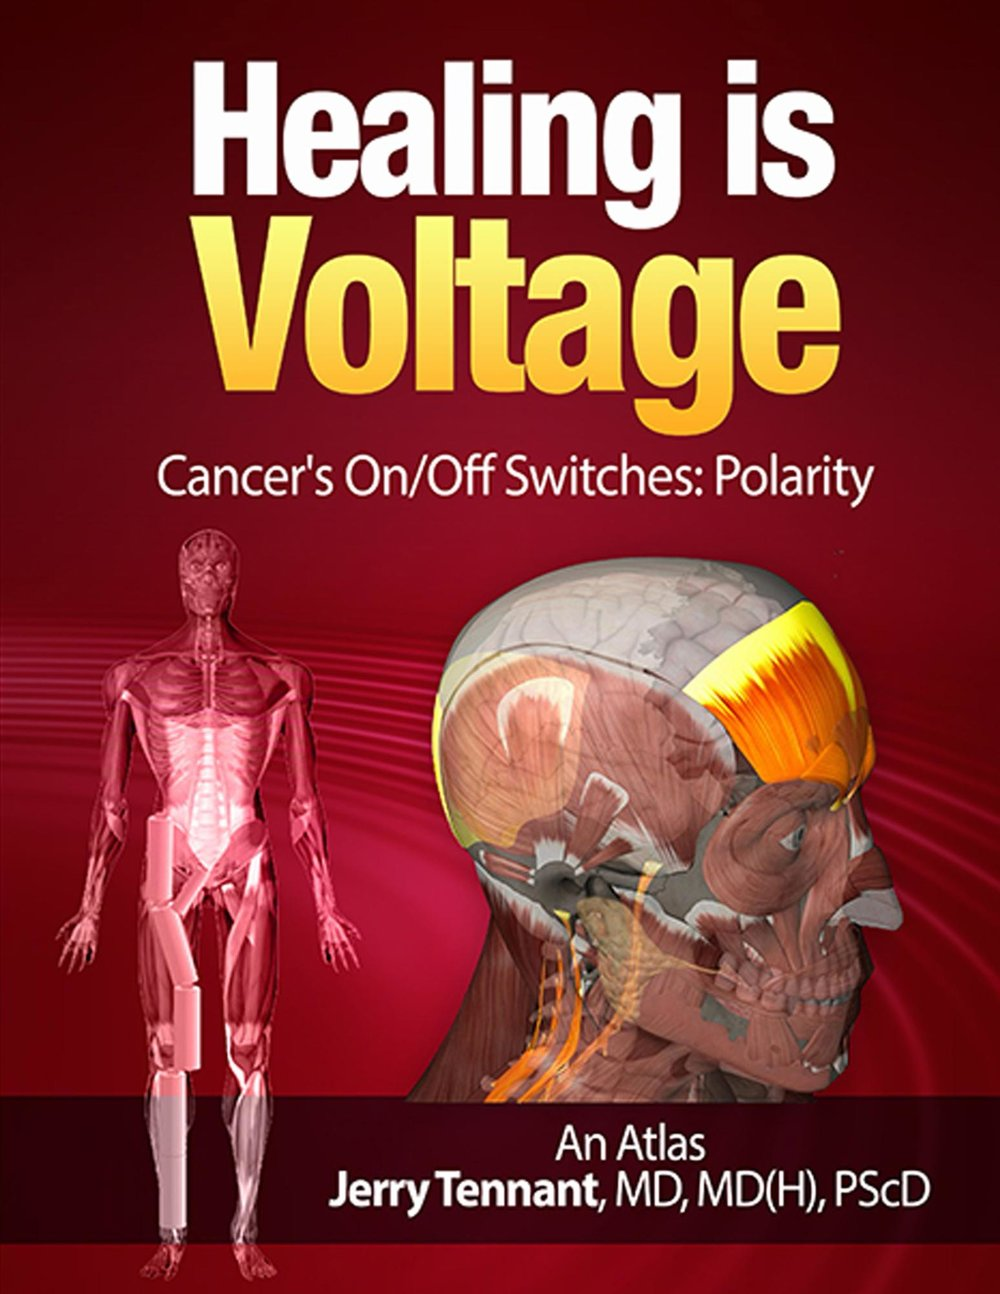 Very few health articles mention pH as a factor of voltage. They persist on explaining everything through the lens of chemical reactions only, leaving us to continue believing only in the paradigm of mechanical (surgery), and chemical (drugs) solutions to issues.  We are missing a HUGE component!